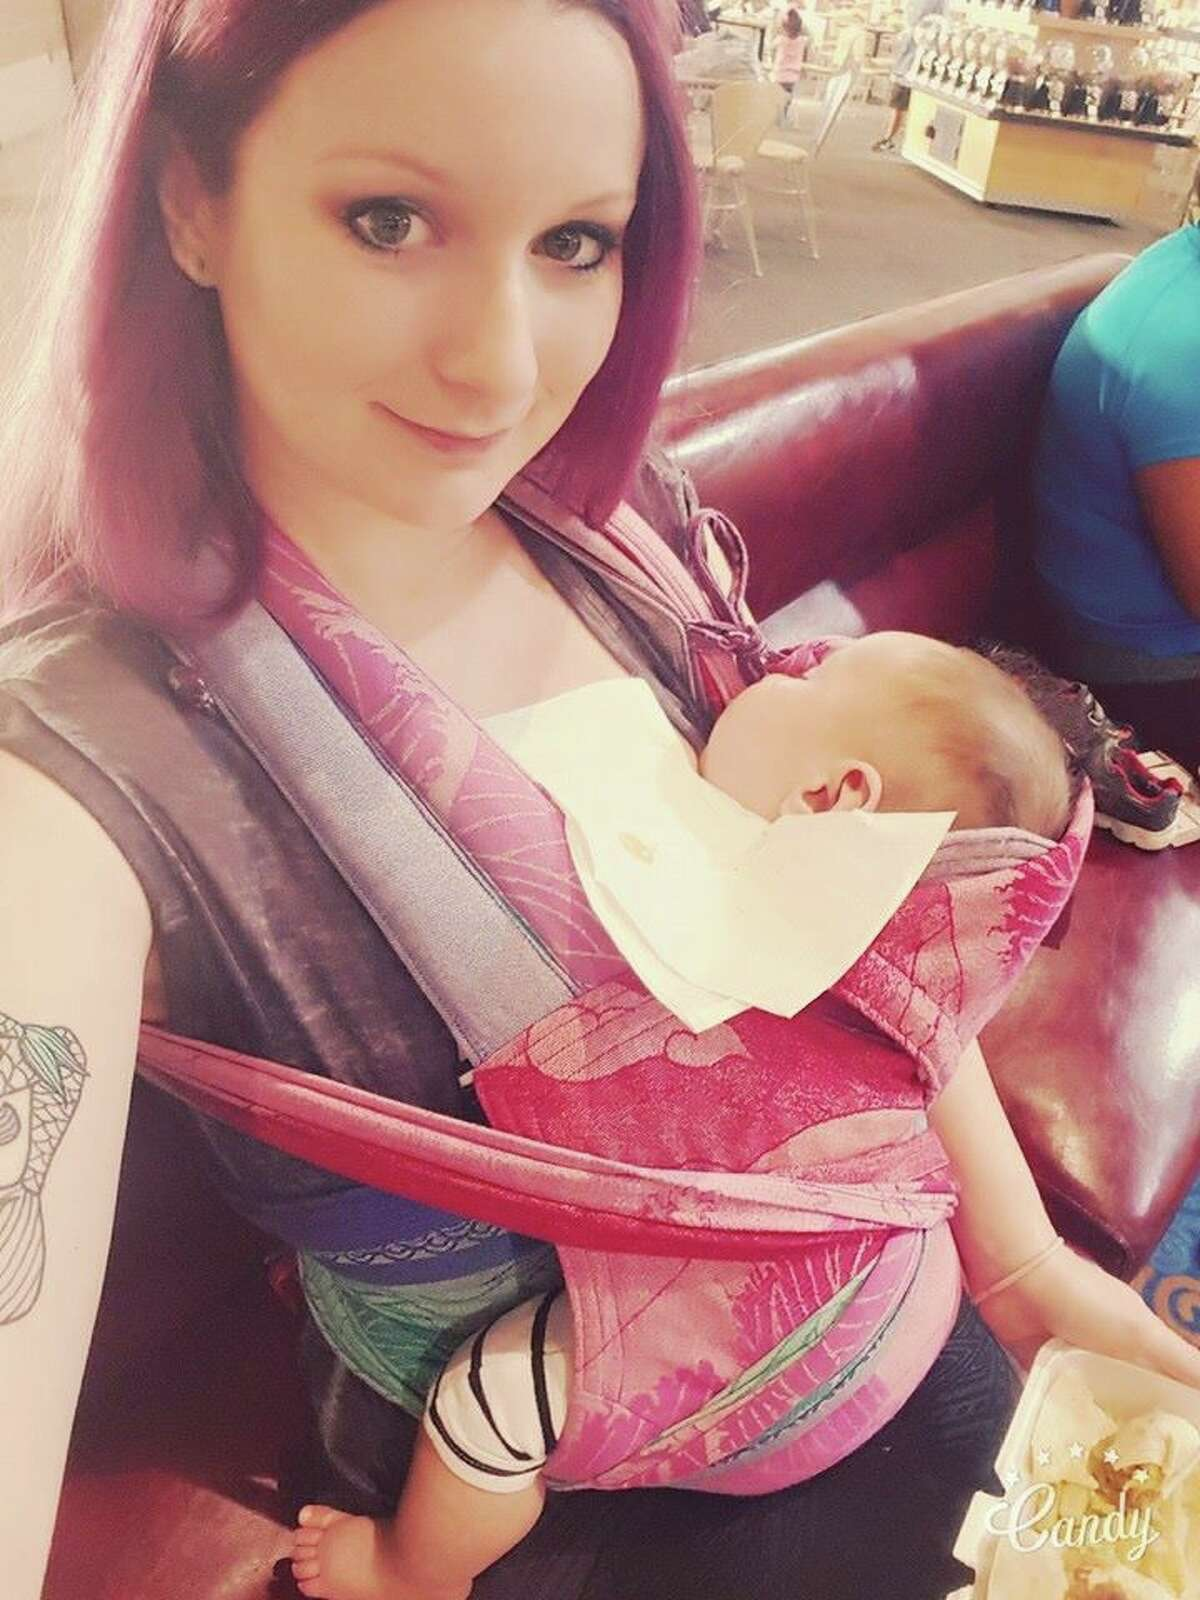 Lake Jackson stay-at-home momBridgette Boudreaux, 24, has found a market for jewelry made out of preserved breast milk. The milk gets sent to her from customers all around the world who have found her online who would like her to make charms and necklaces from portions of their milk.